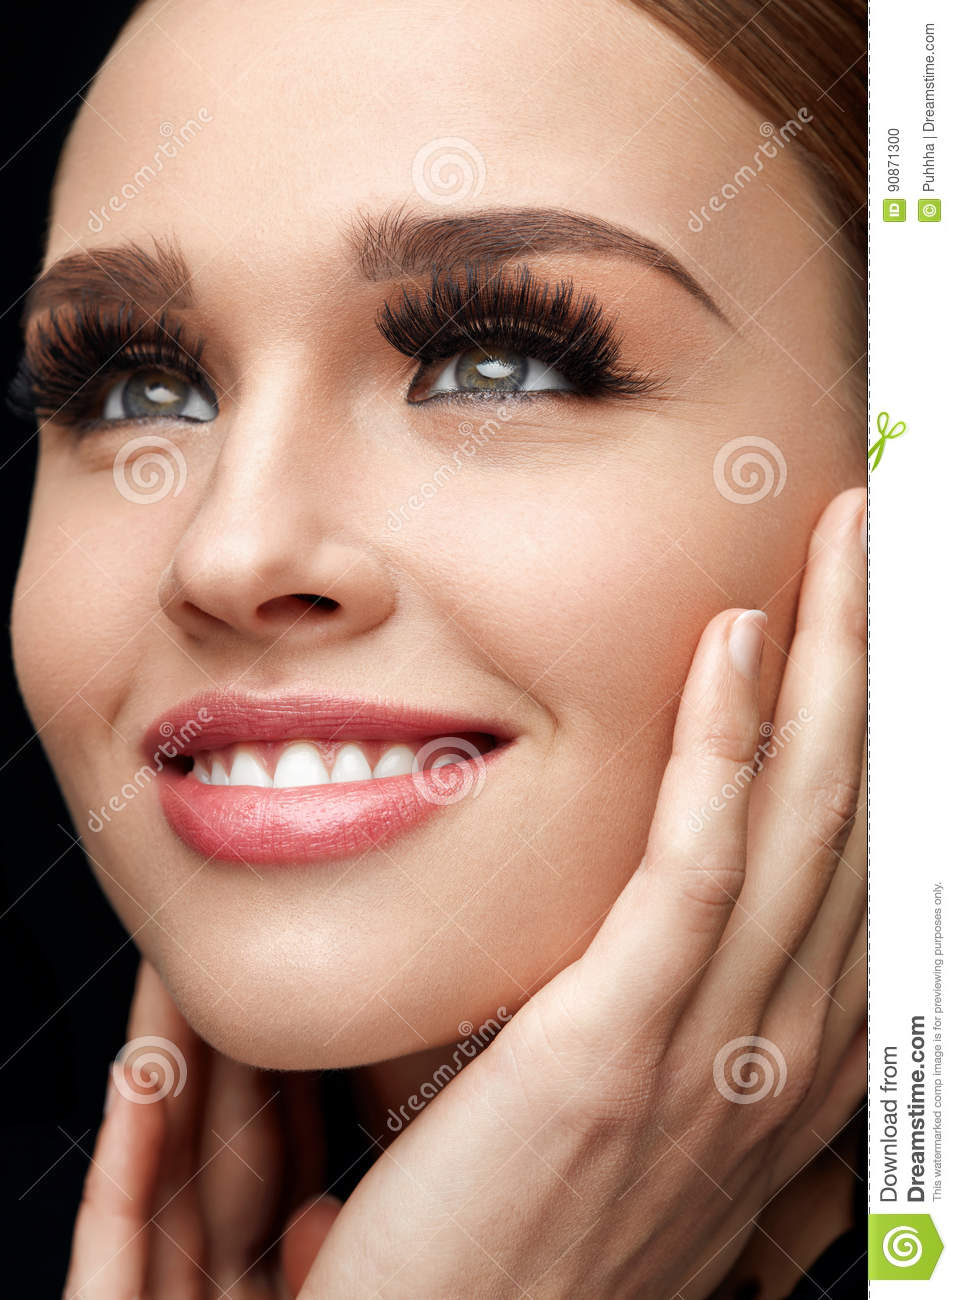 f36117bf93a Closeup Of Glamorous Girl With Hands Touching Soft Smooth Skin. Portrait Of Beautiful  Woman With Perfect Facial Makeup And Long Black Fake Eyelashes.